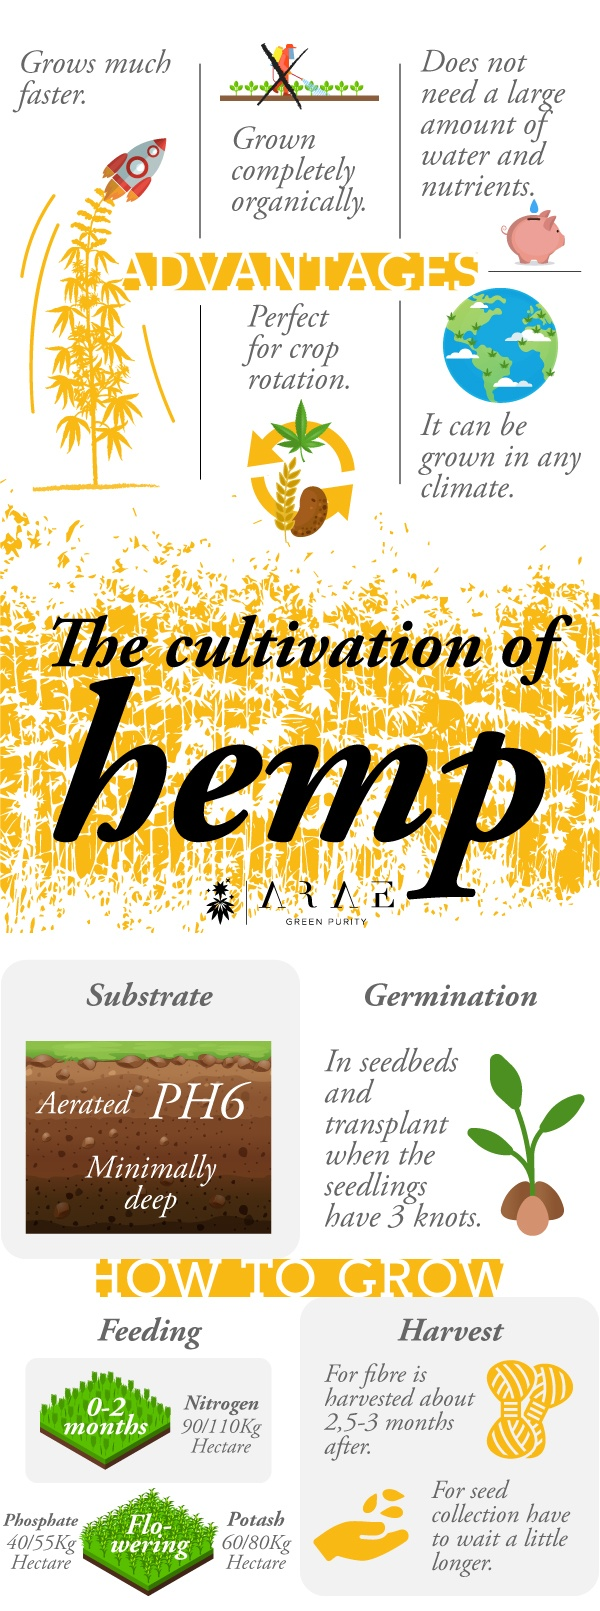 Image showing the requirements for growing hemp, Infographic representing the advantages of hemp growing*